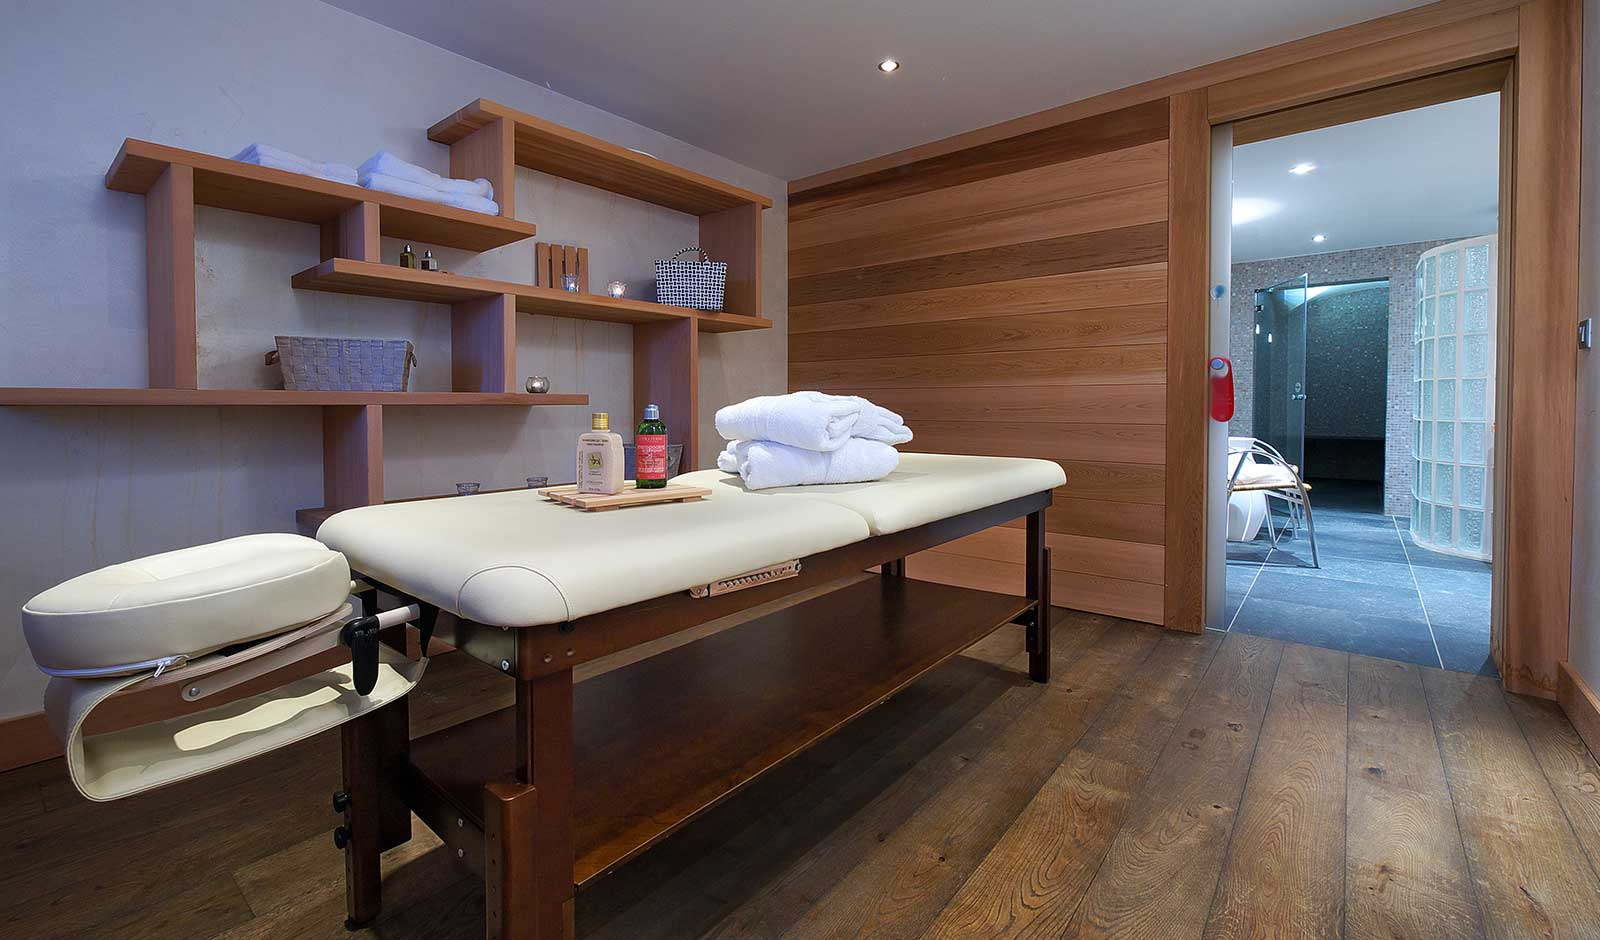 hotel-adray-telebar-7-atelier-crea-and-co-architecte-design-project-manager-meribel-savoie